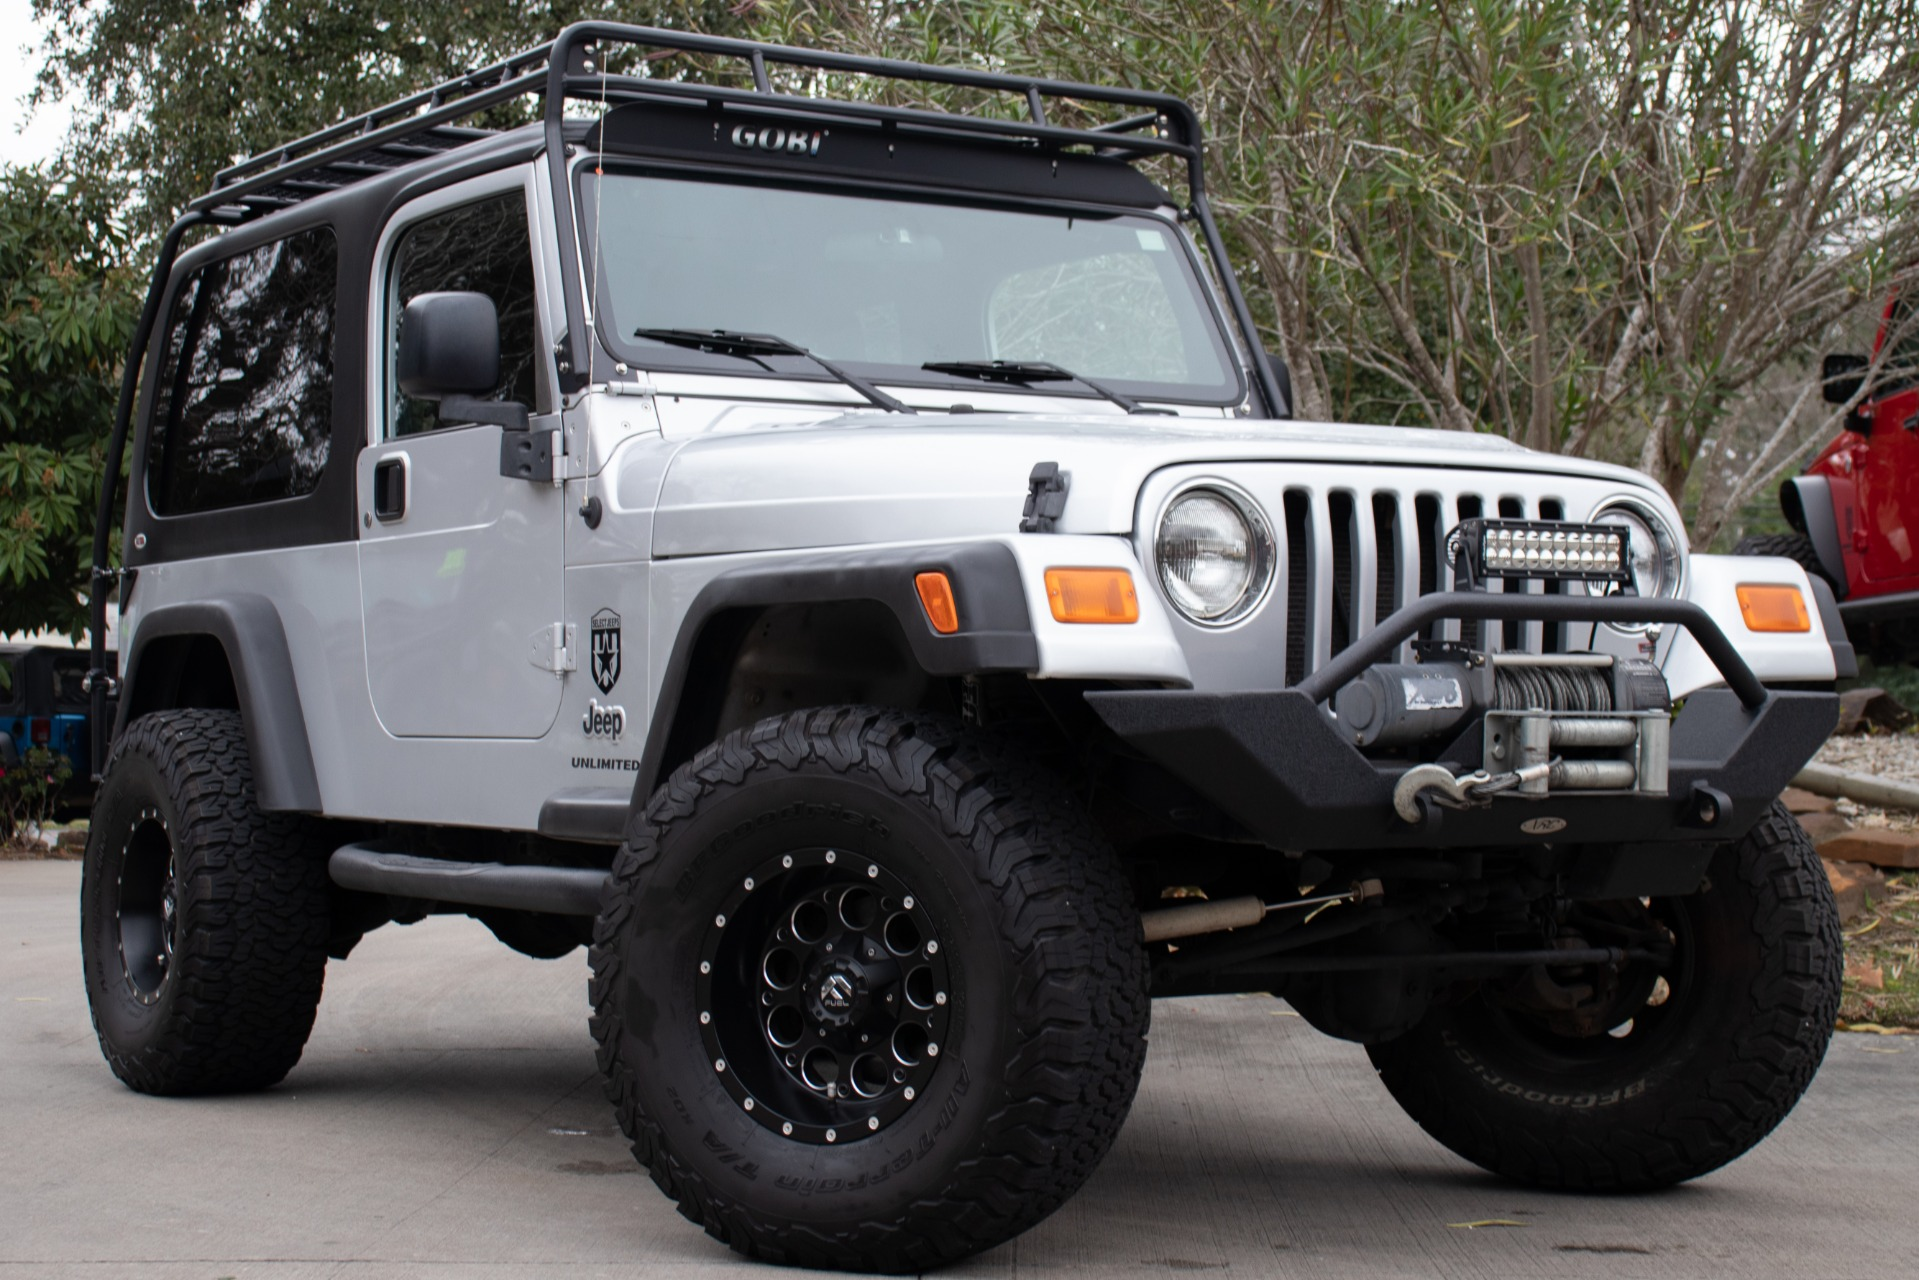 ... Used 2004 Jeep Wrangler Unlimited 2dr Unlimited LWB ...